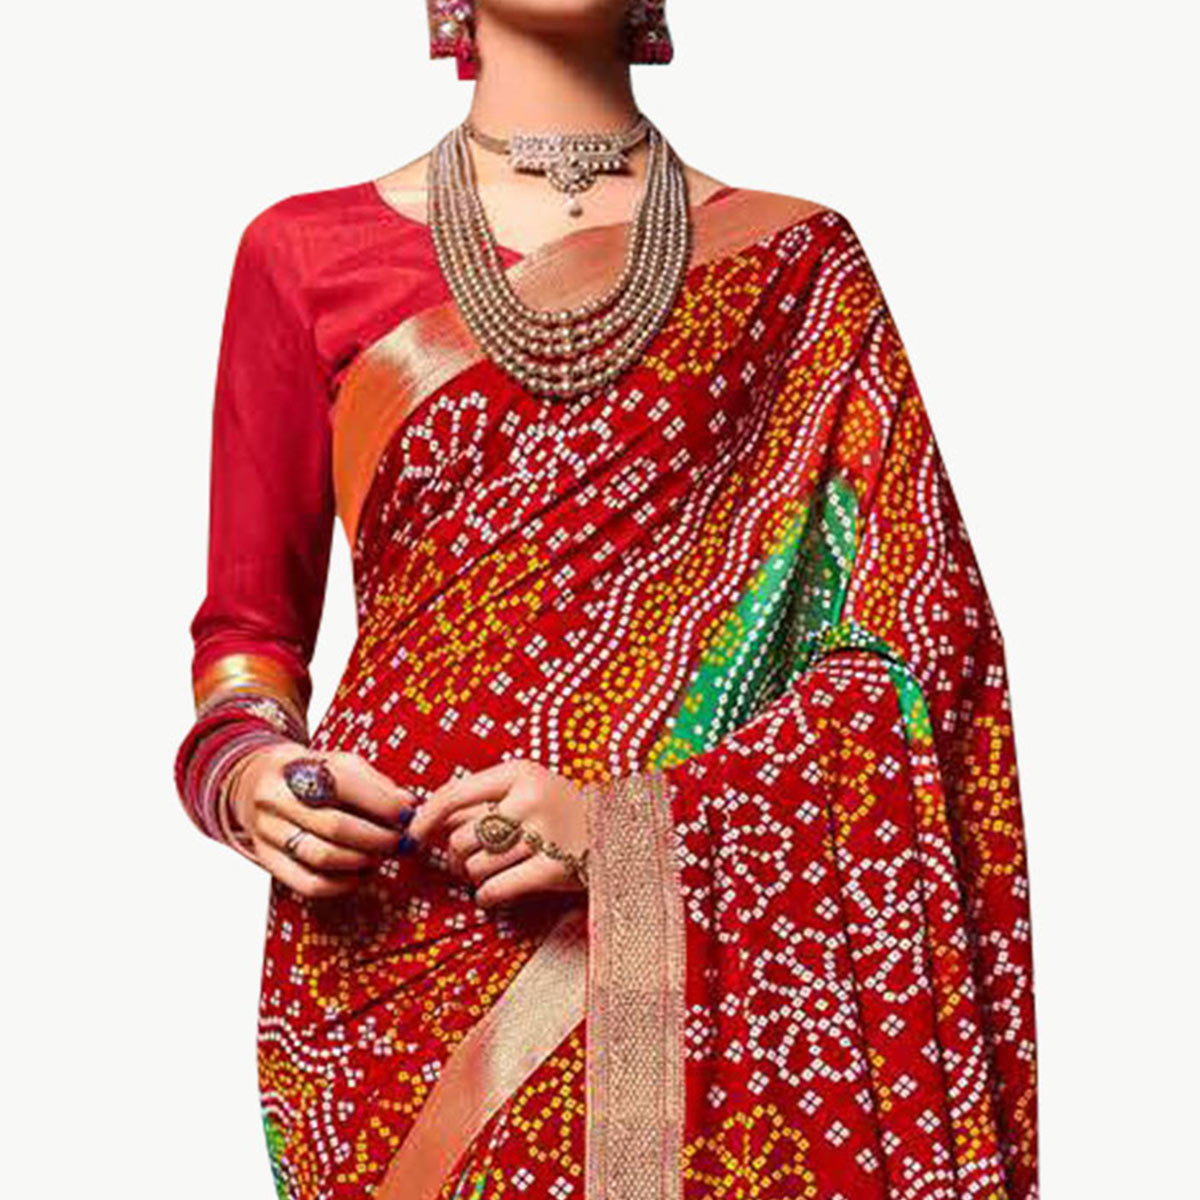 Breathtaking Red Colored Bandhani Printed Heavy Georgette Saree With Jacquard Lace Border